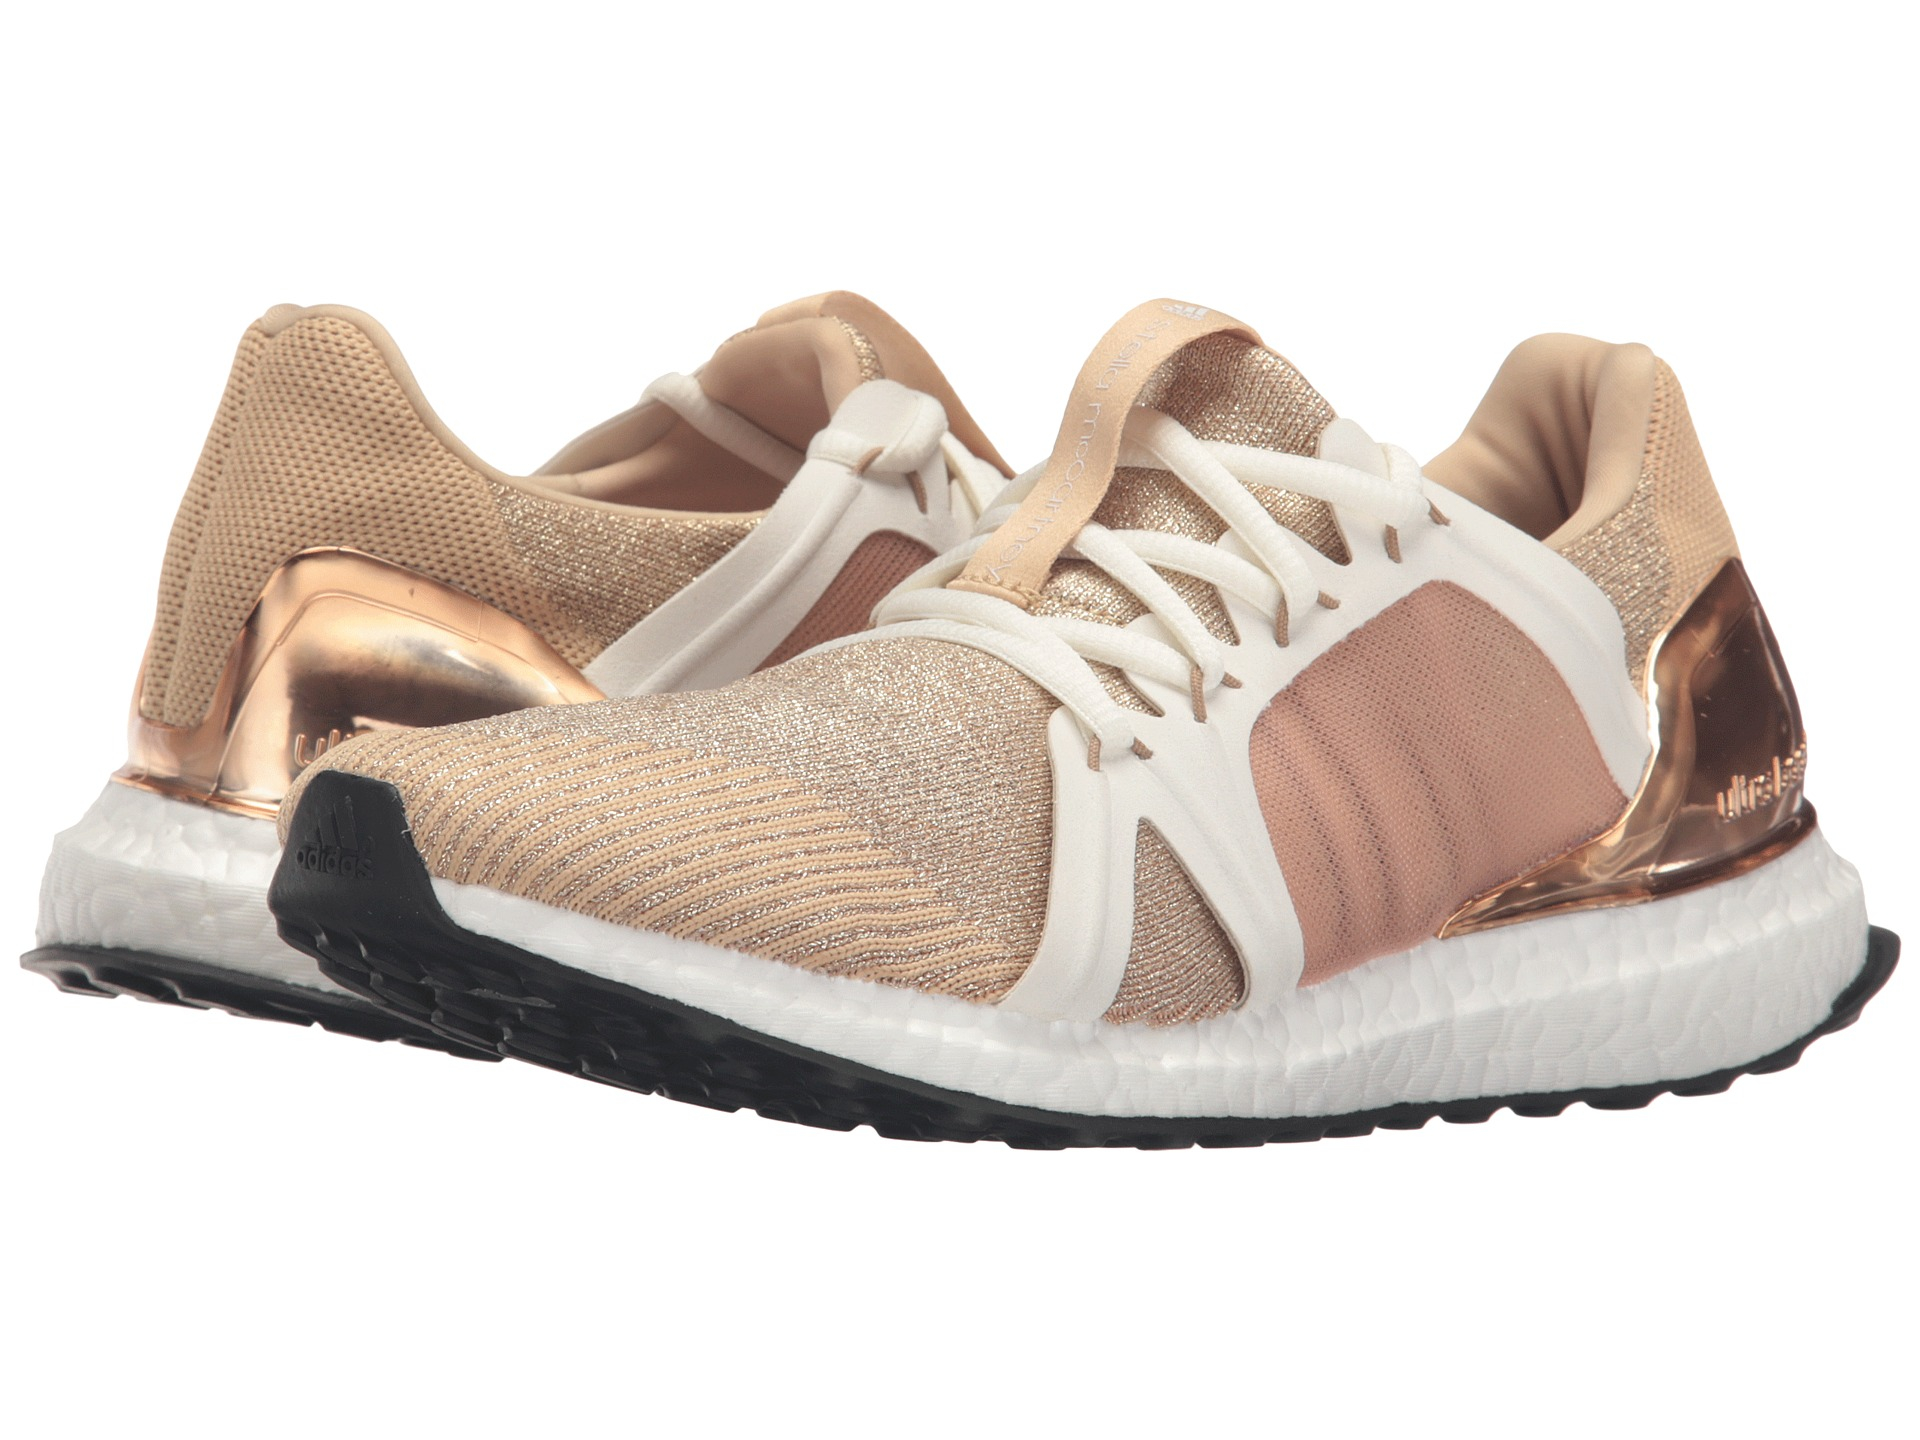 19acdad6e2c ... coupon code lyst adidas by stella mccartney ultra boost in white 3a324  bab4a ...